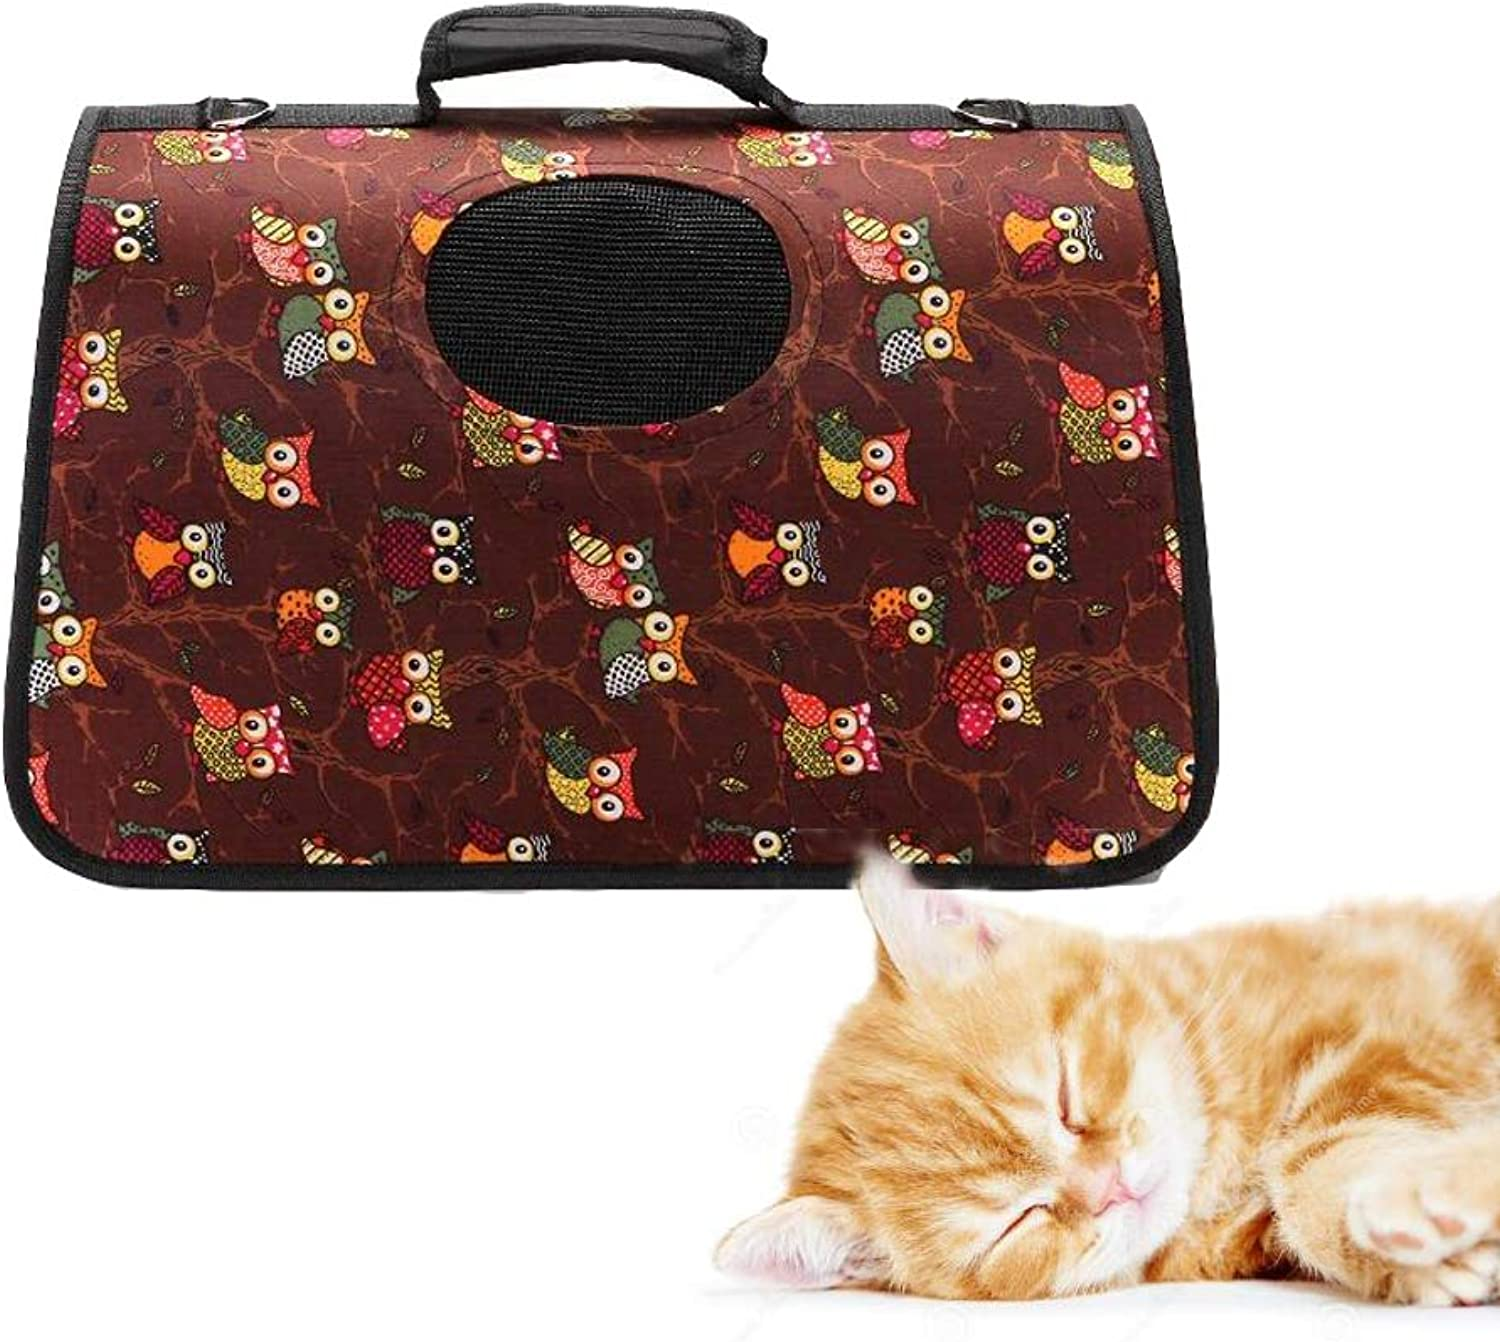 Collapsible Pet Bag, Waterproof Portable Pet Backpack, Carrying Cats, Dogs, Small Pets,A,S